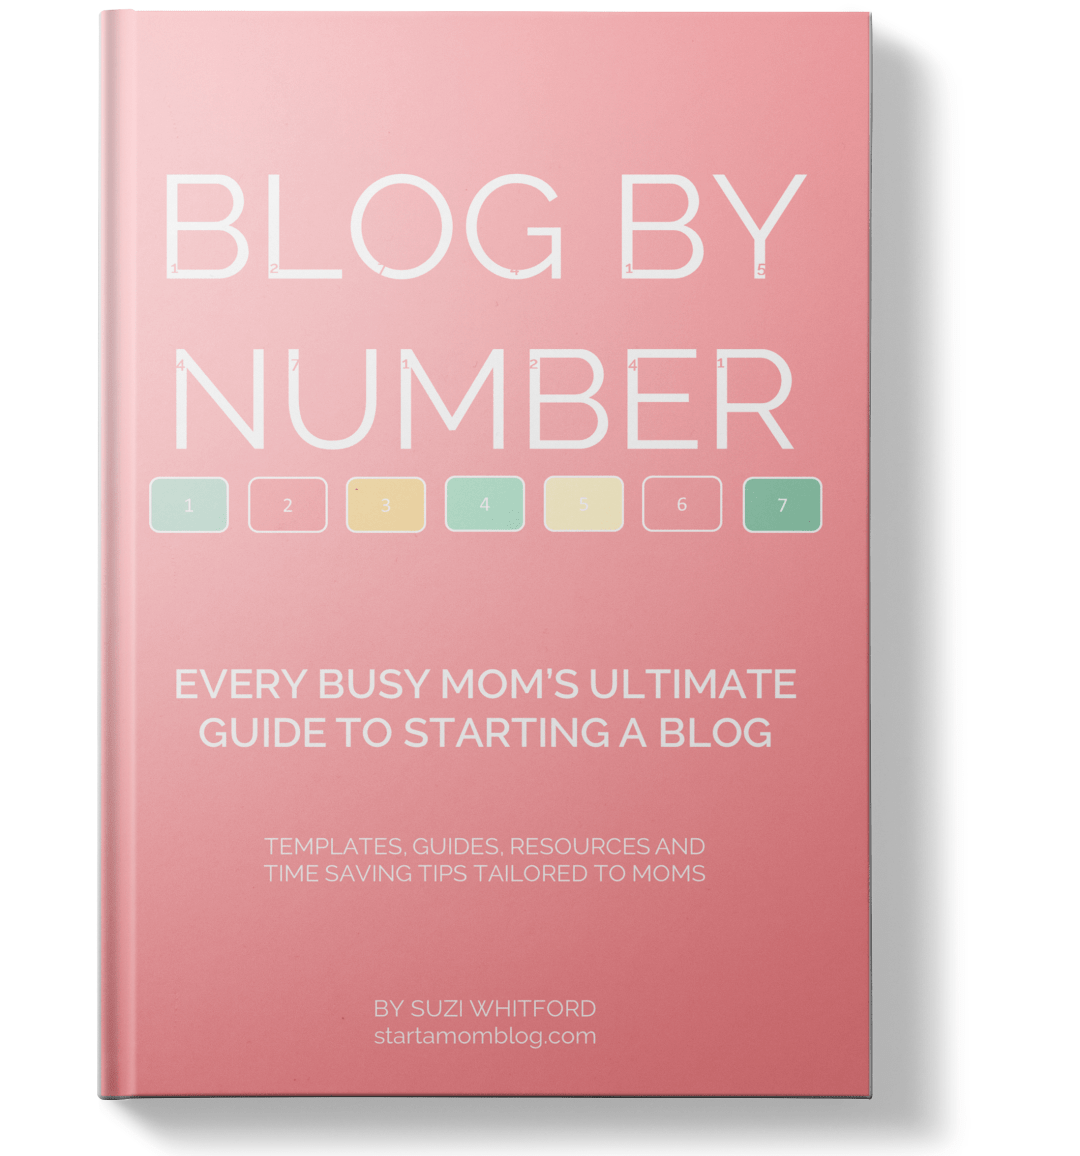 Blog-by-Number-hard-cover-top-3-square2.png